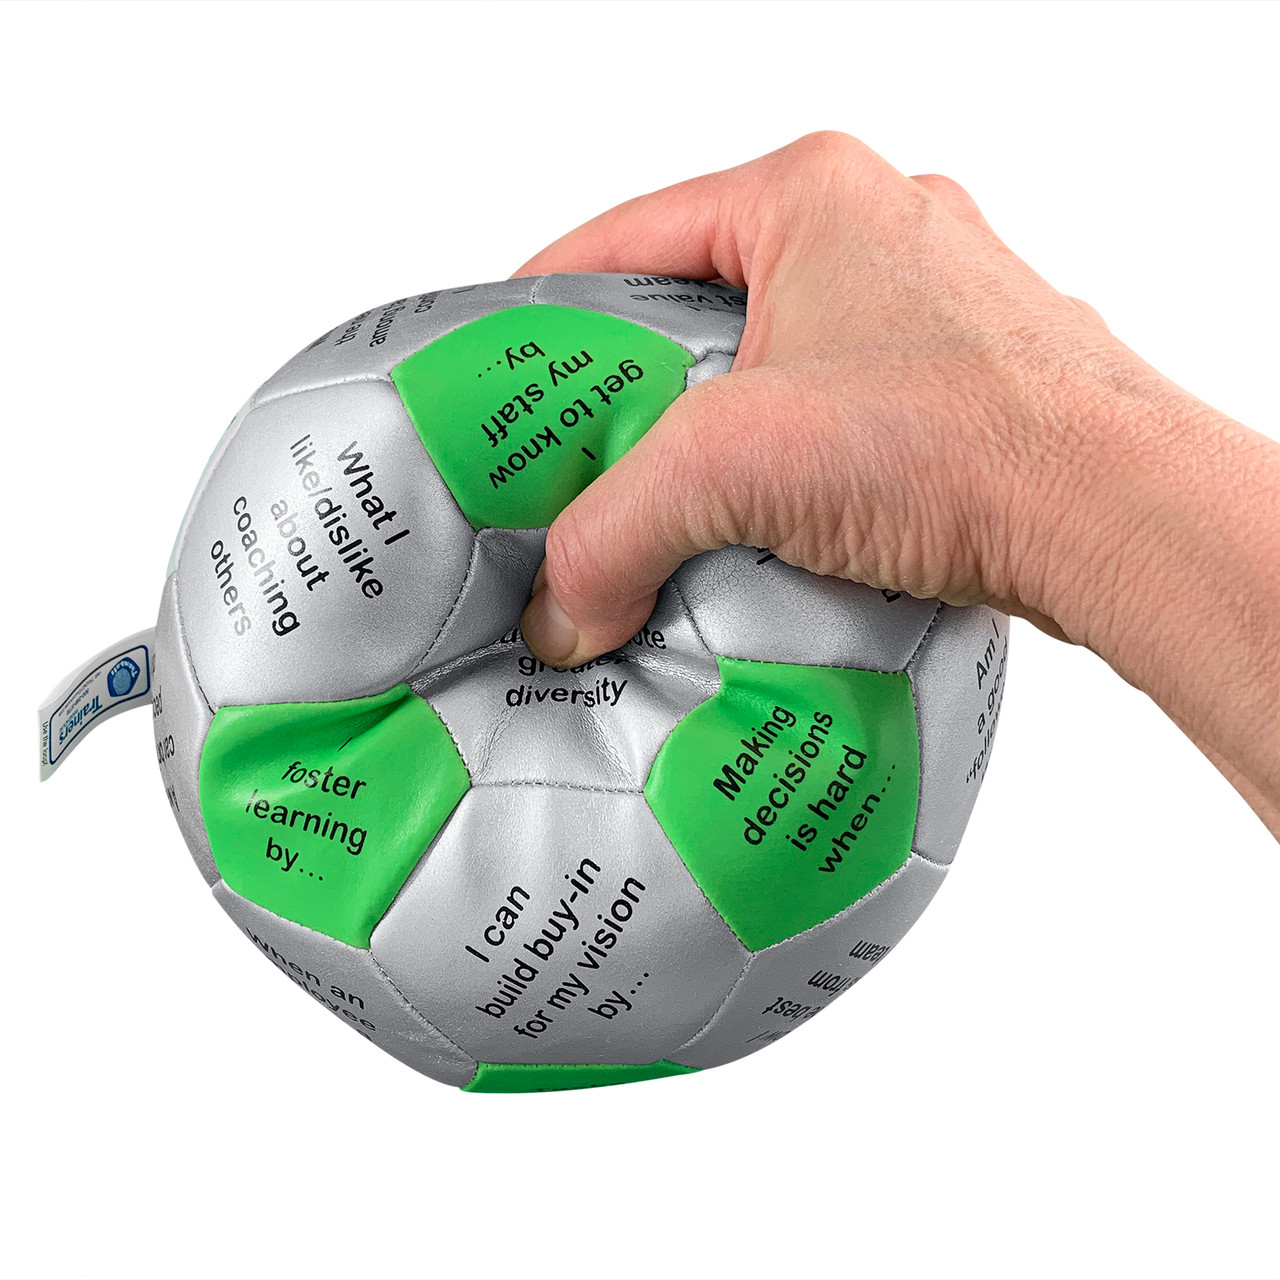 Be a Leader Thumball - hand squeezing ball